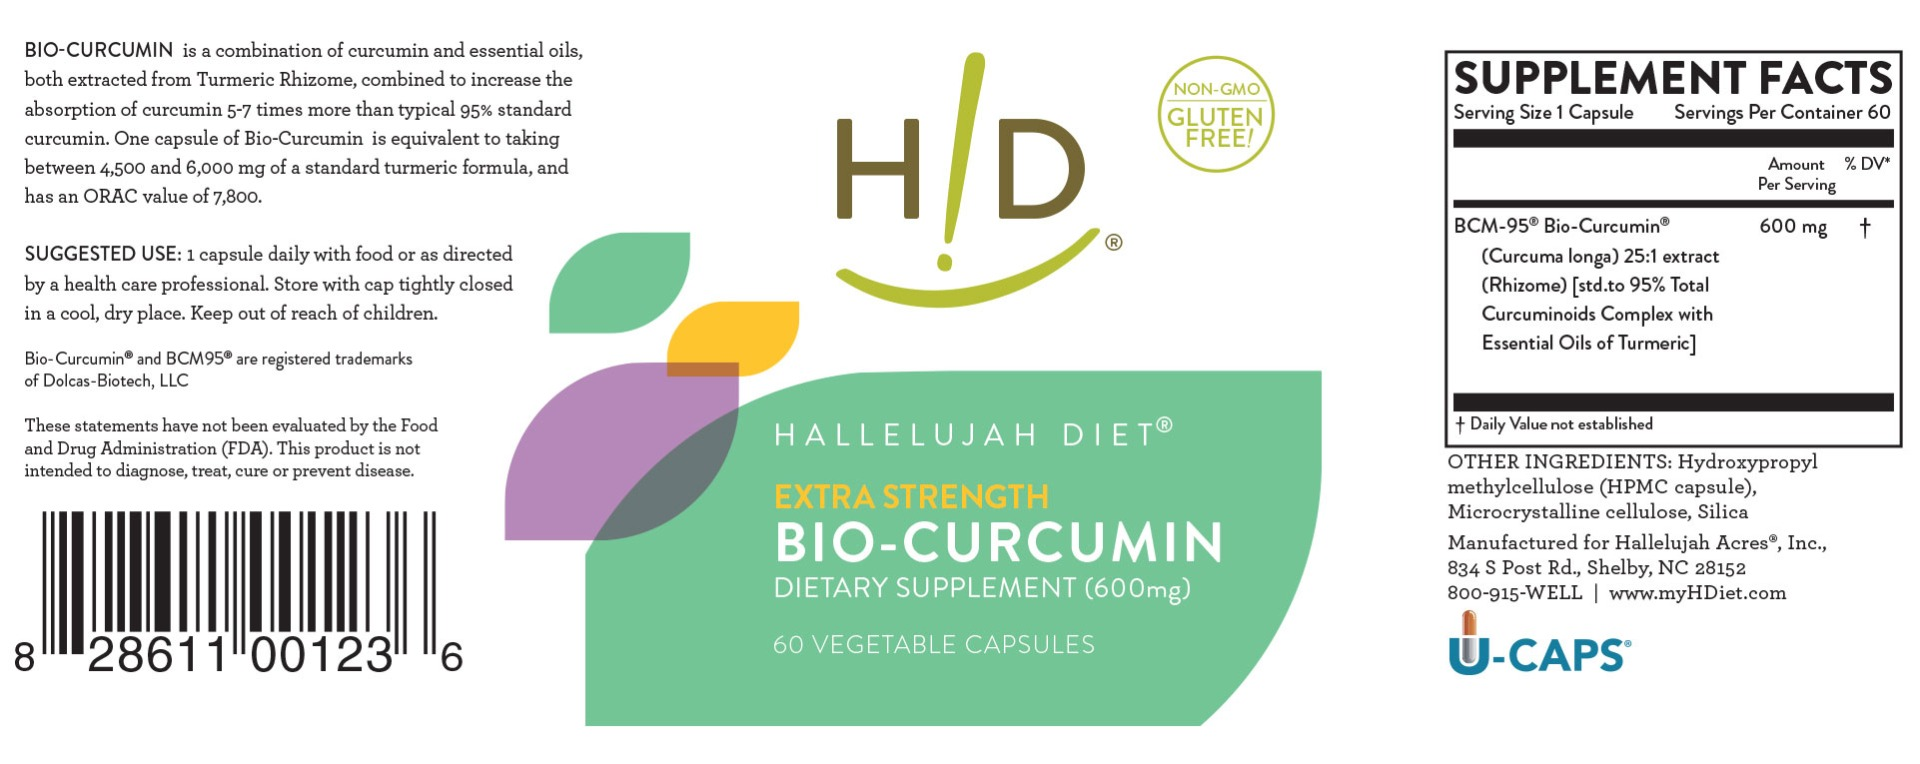 Hallelujah Diet BioCurcumin 600mg Label